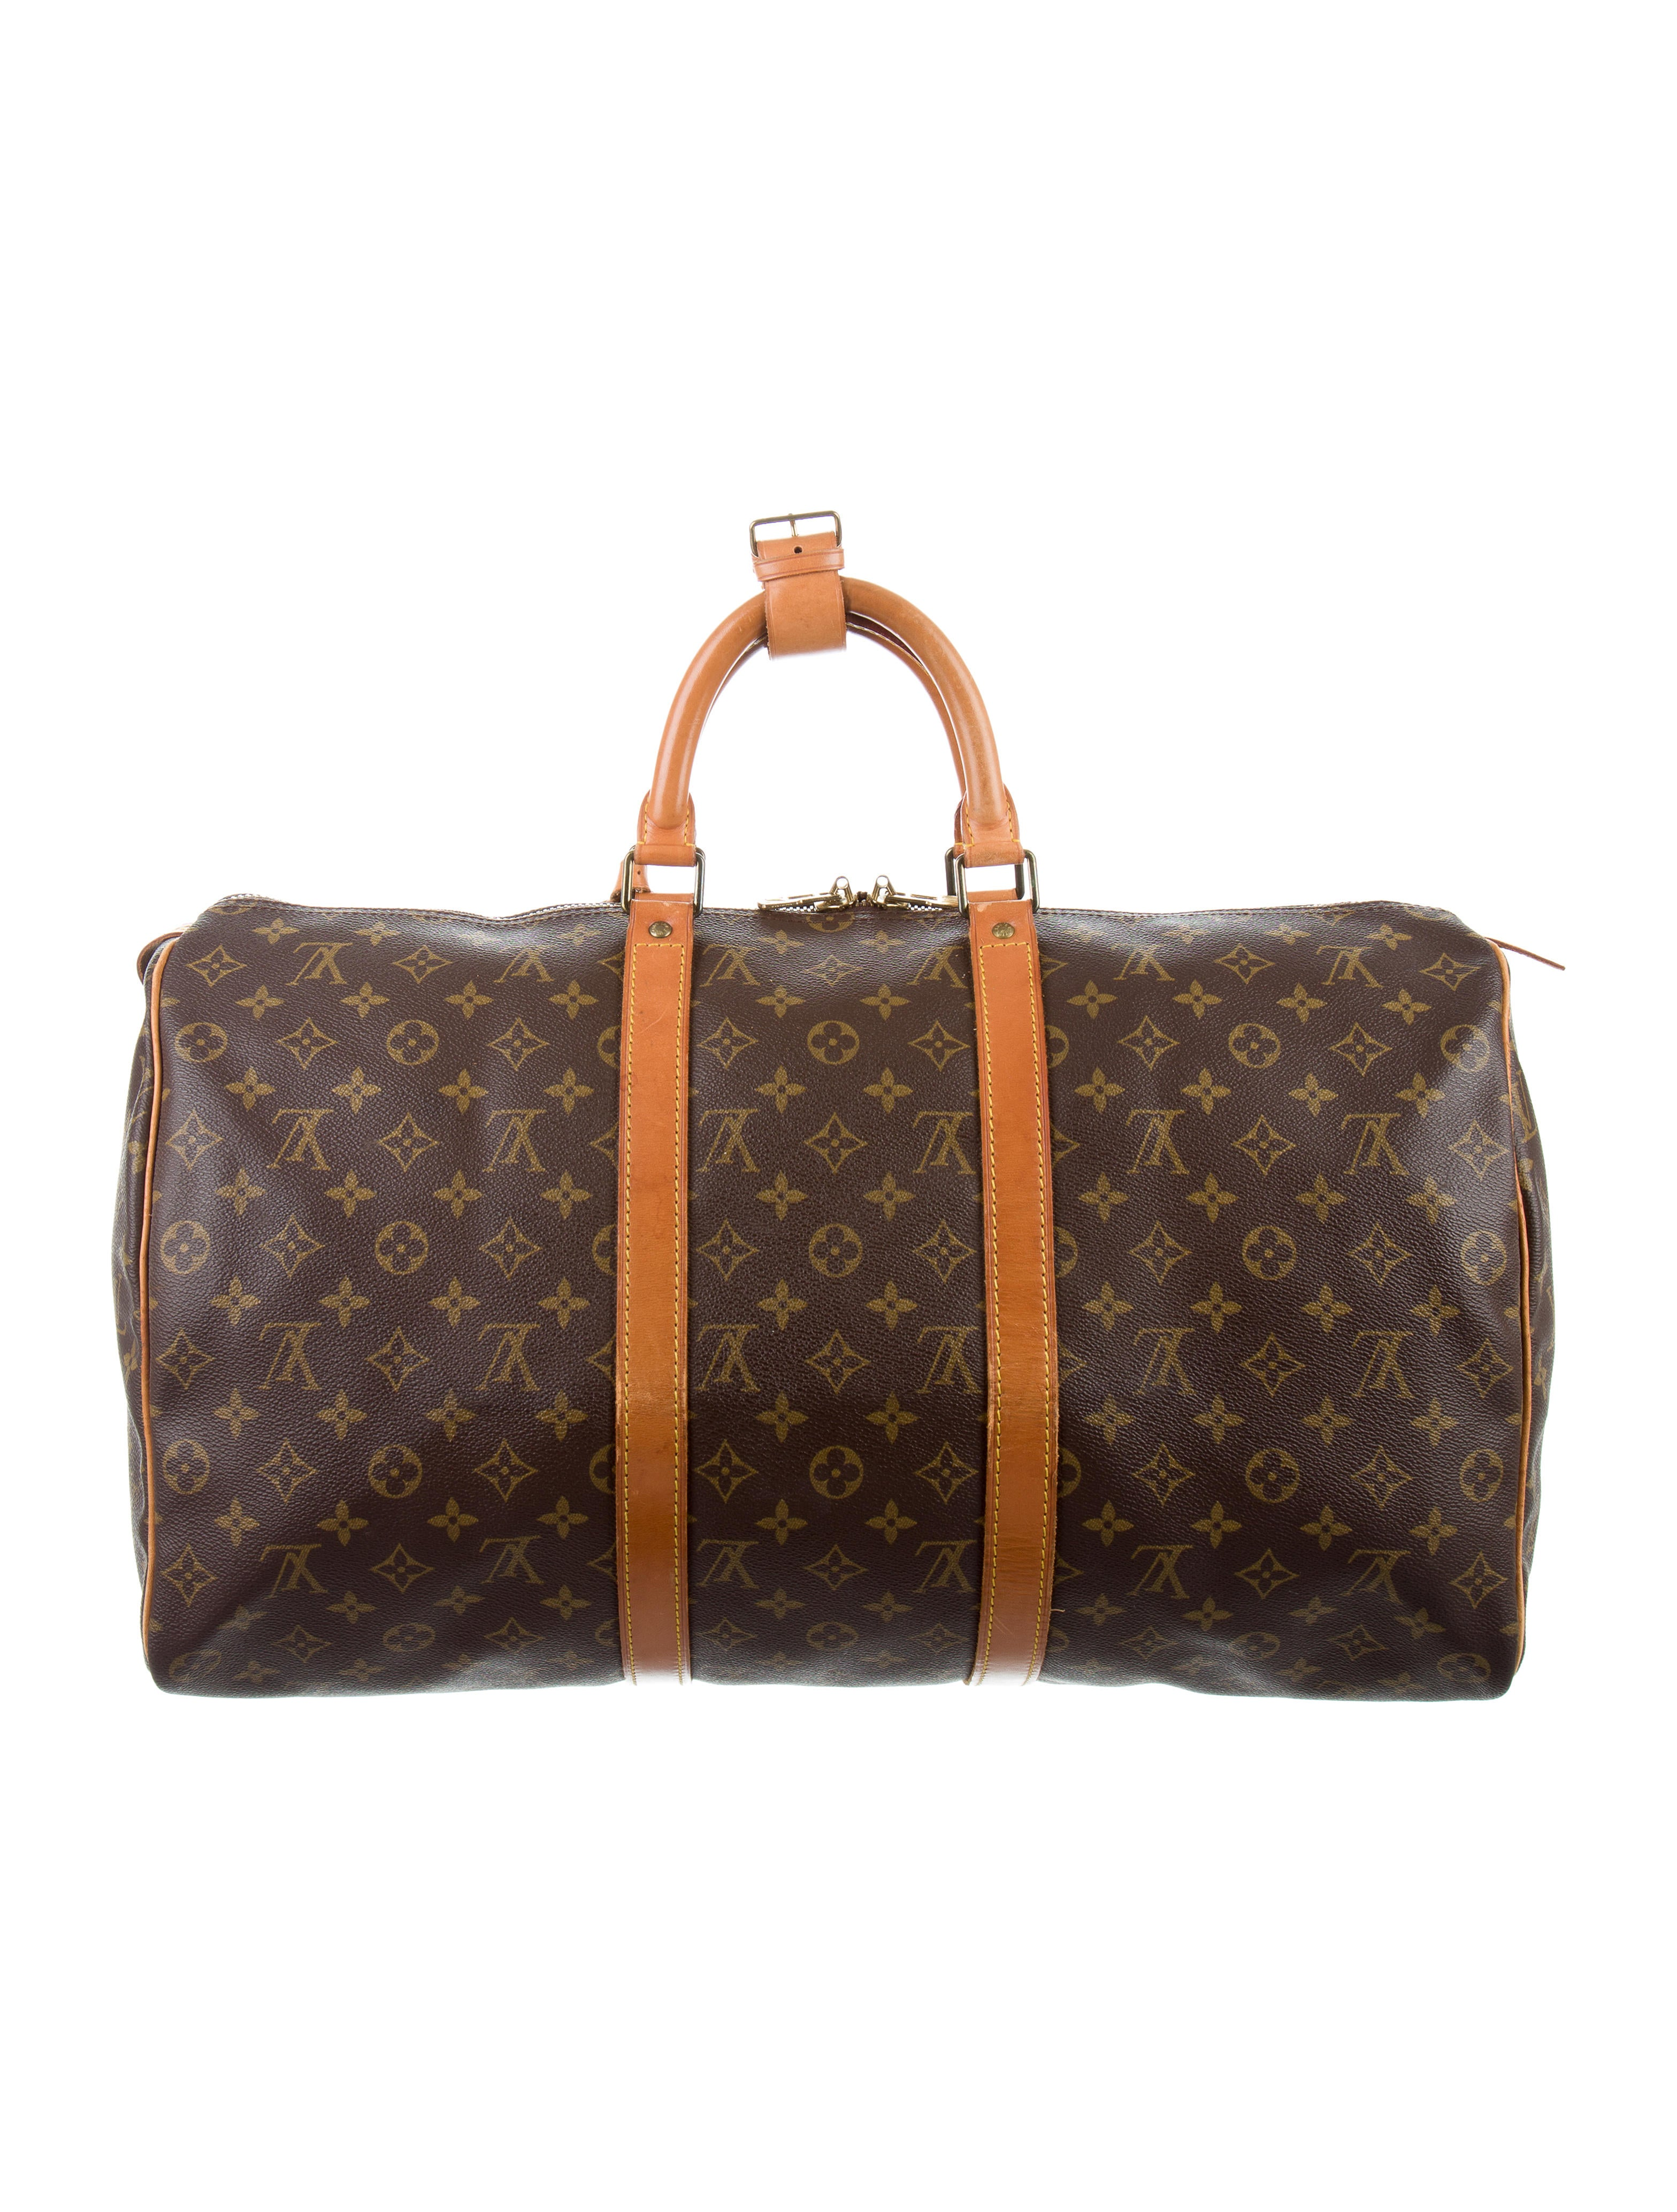 louis vuitton monogram keepall 50 bags lou116656 the realreal. Black Bedroom Furniture Sets. Home Design Ideas